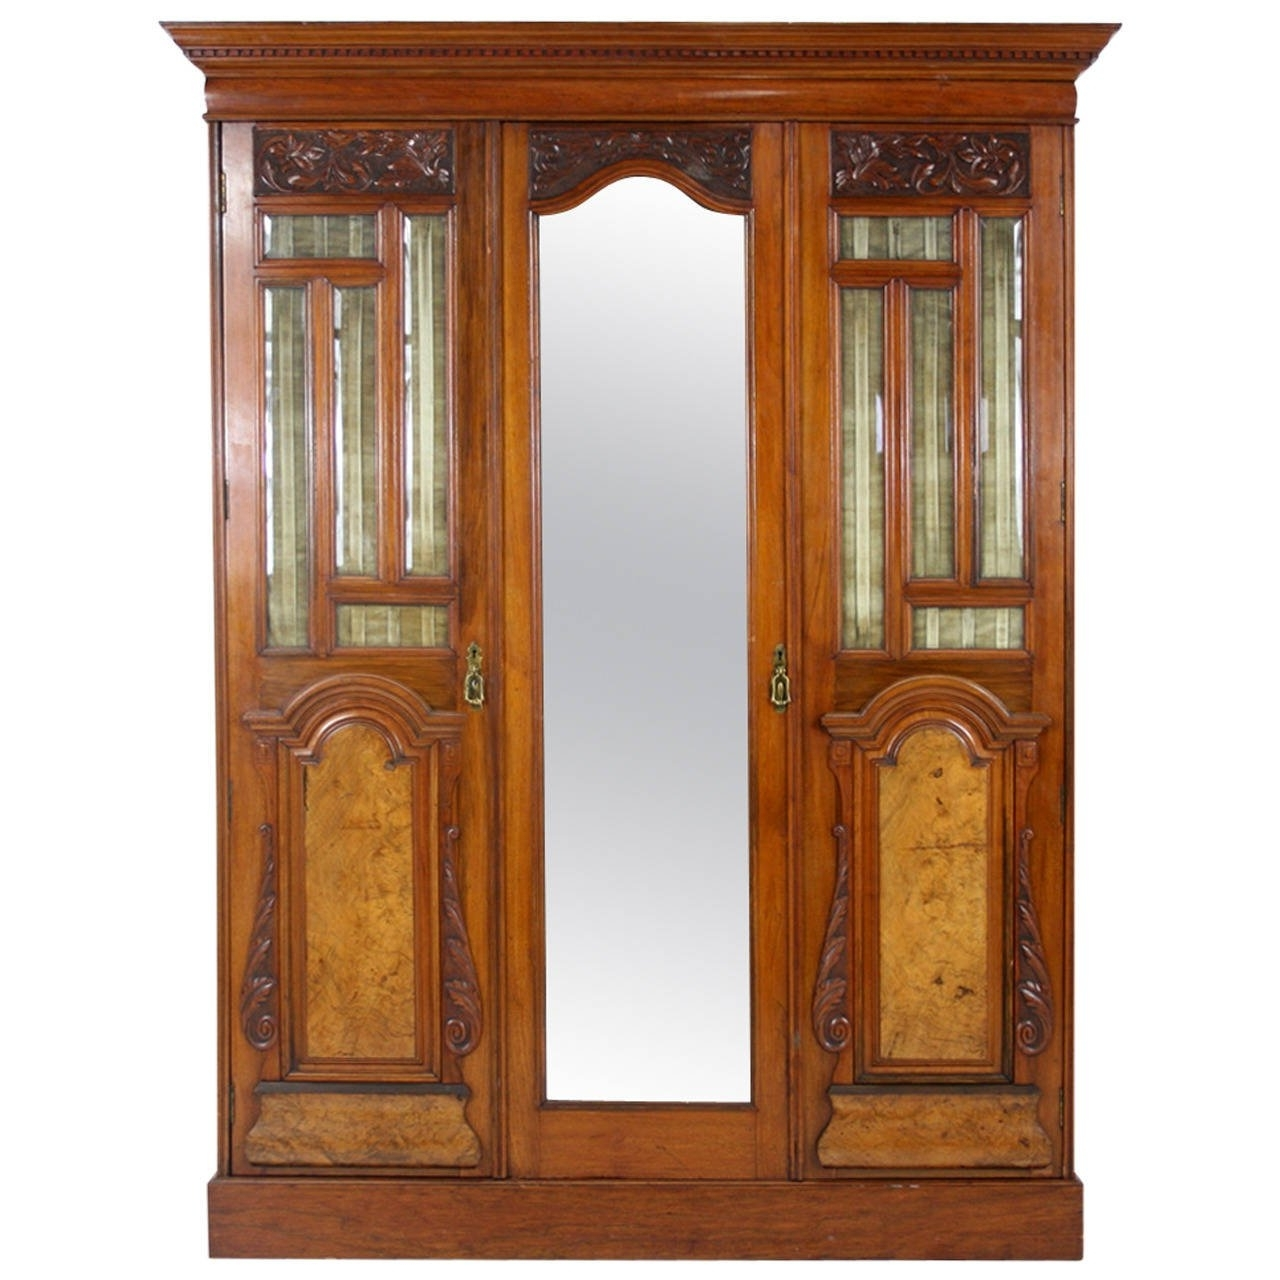 Victorian Walnut 3 Door Wardrobe Cupboard Armoire With Mirror At Inside Famous Wardrobes 3 Door With Mirror (View 12 of 15)